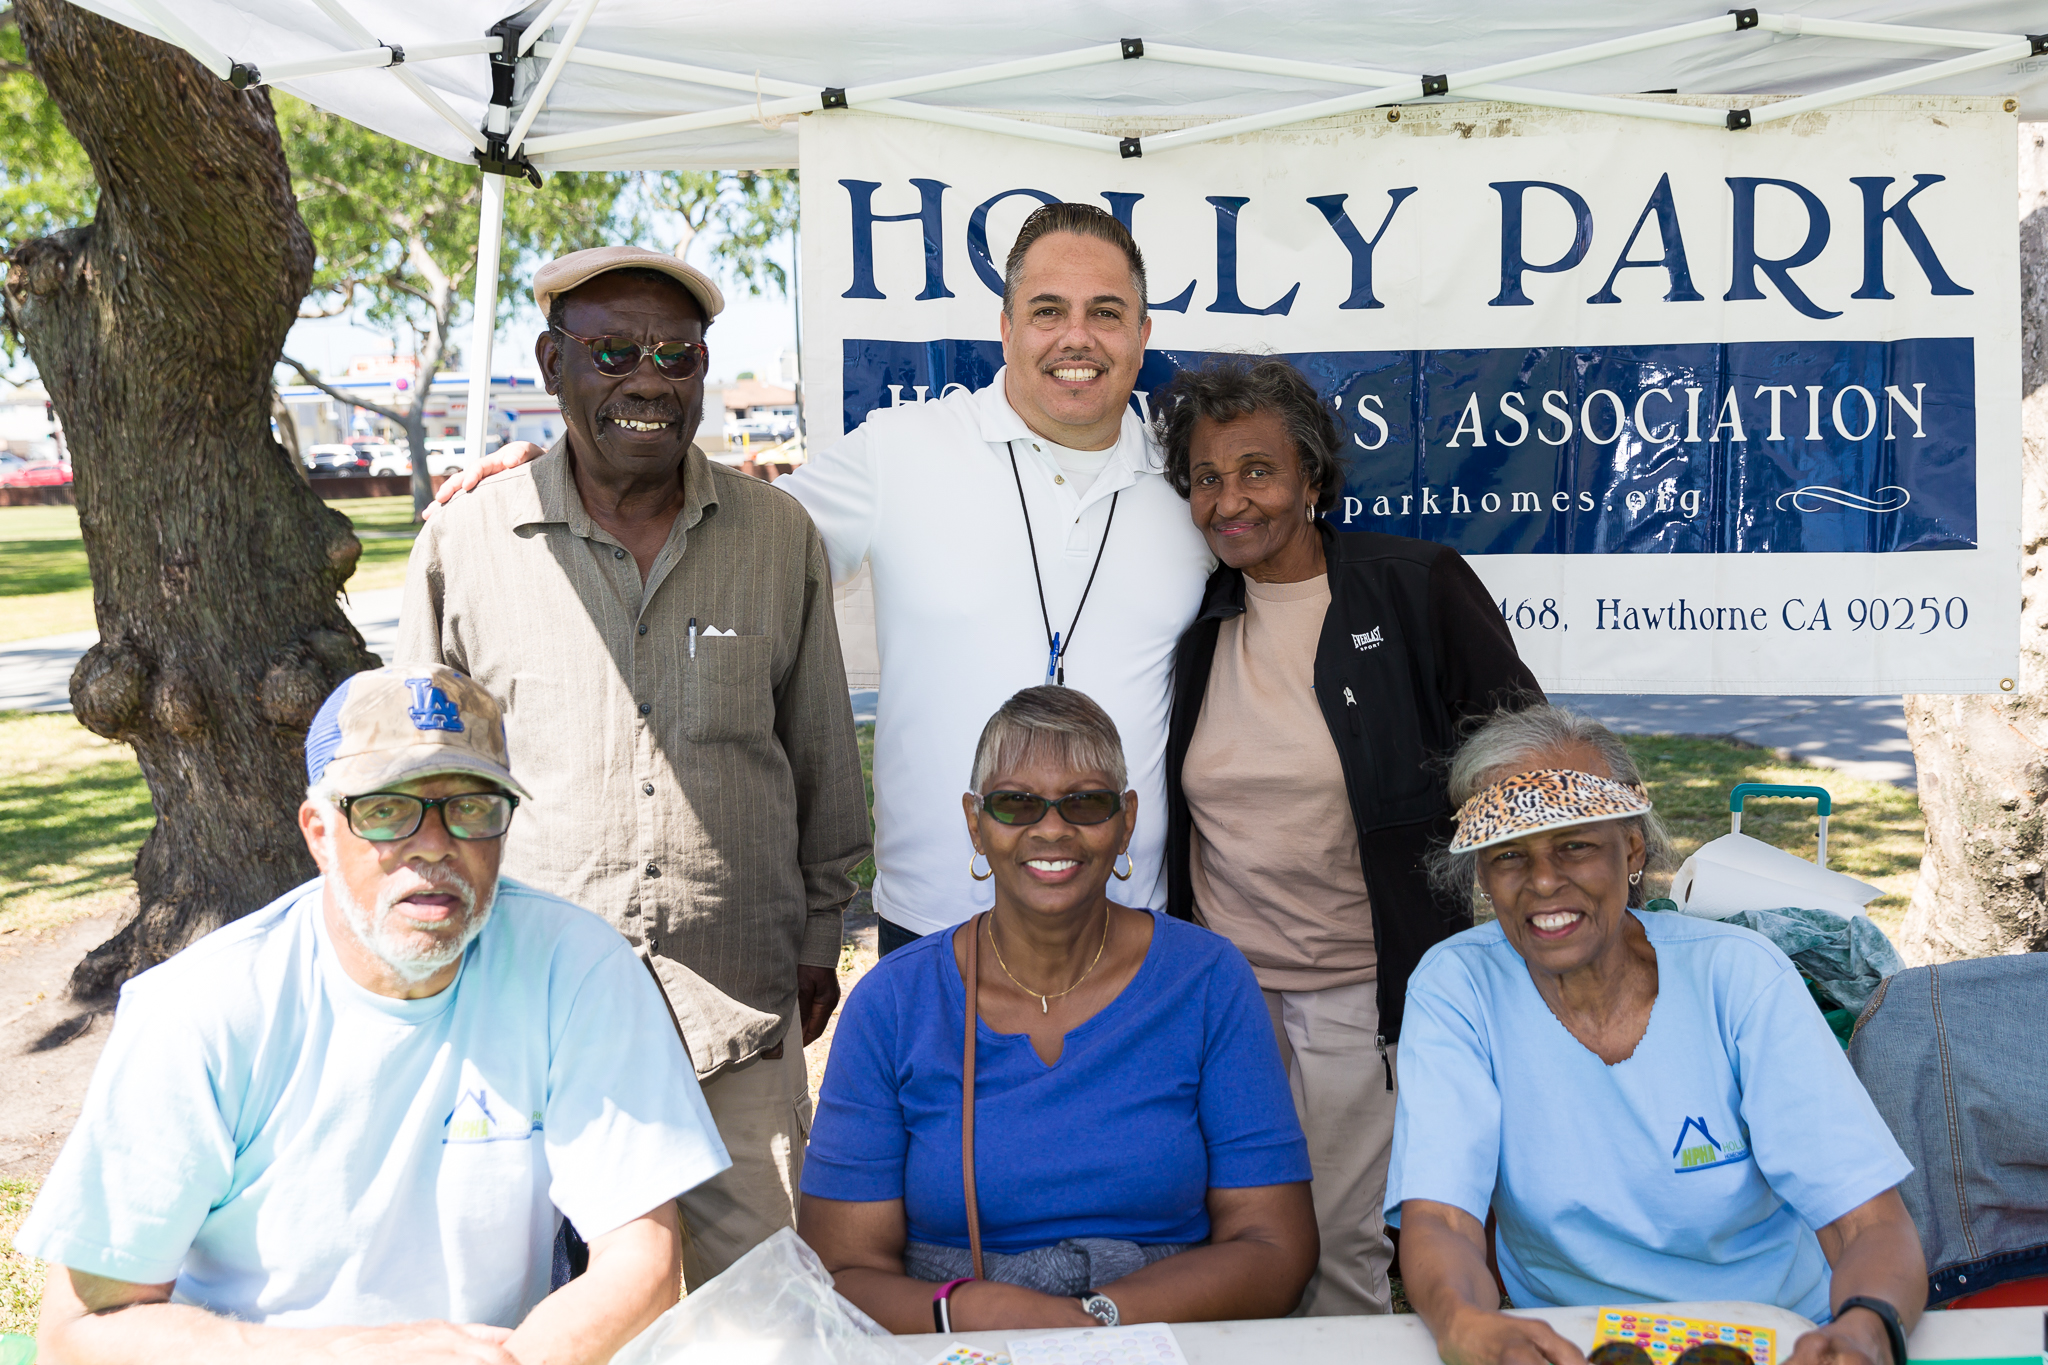 Holly Park Homeowners Association booth